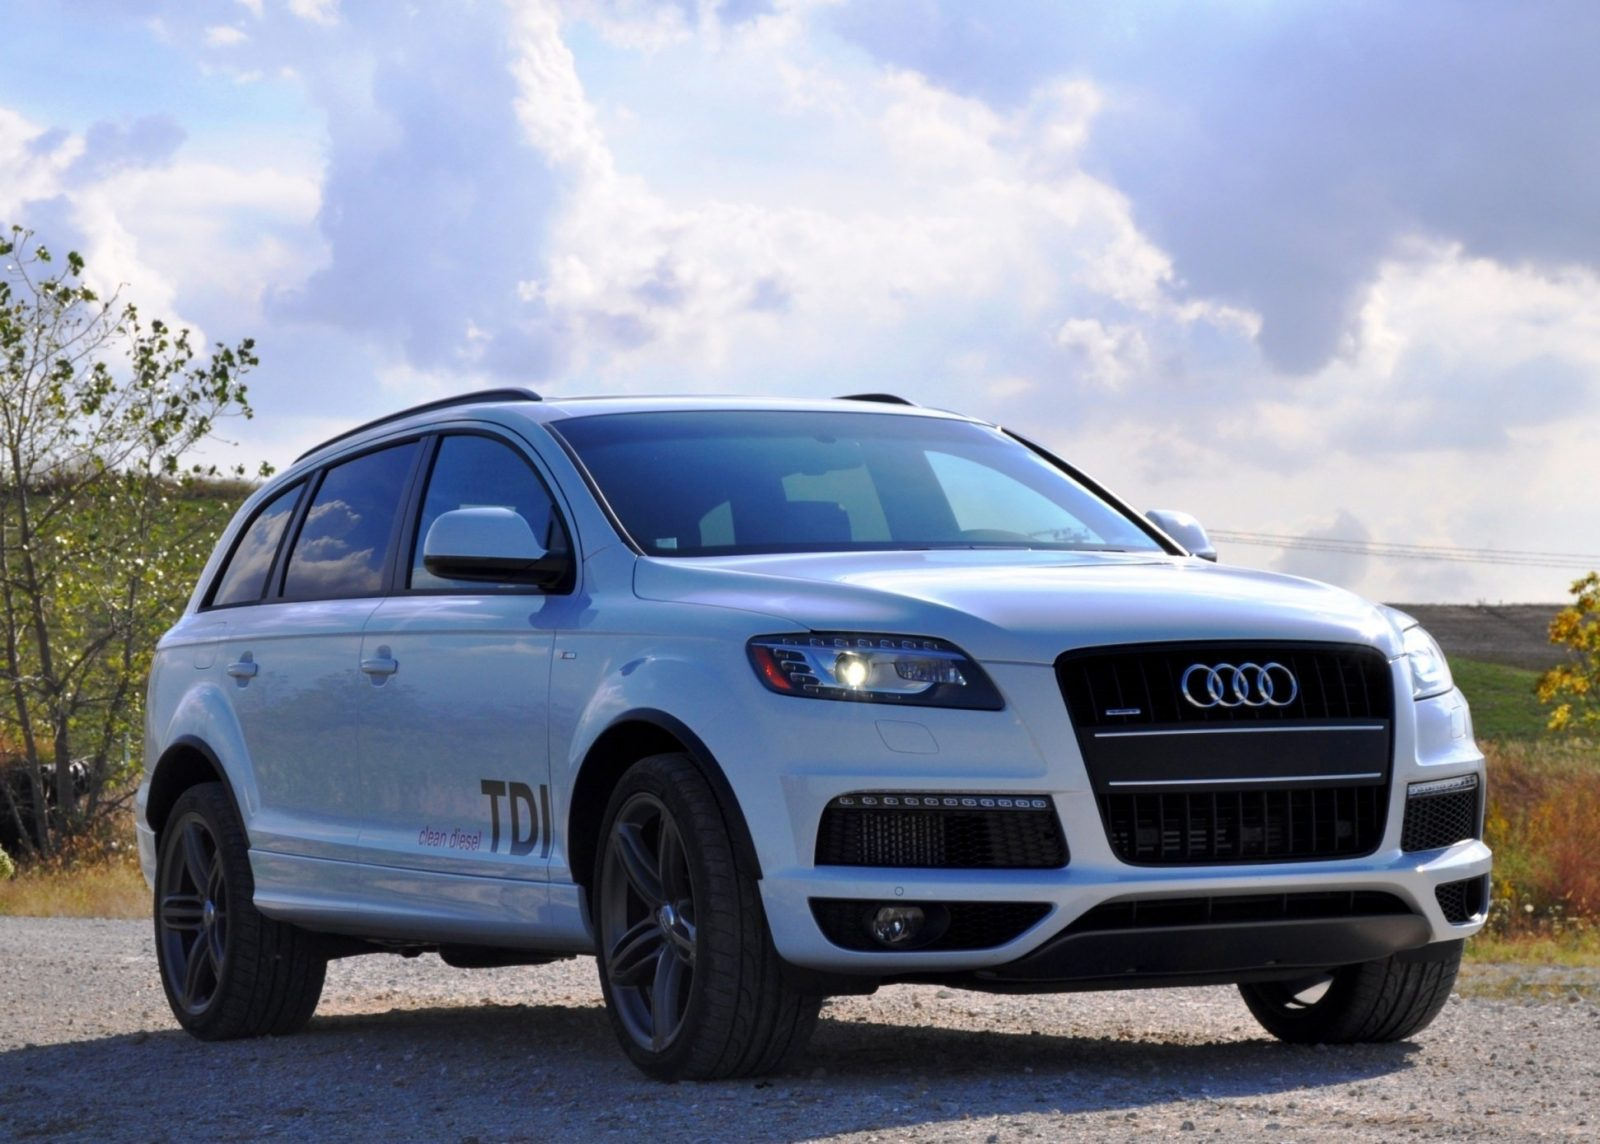 2014 audi q7 tdi s line plus buyers guide with galleries specs and pricing car revs. Black Bedroom Furniture Sets. Home Design Ideas